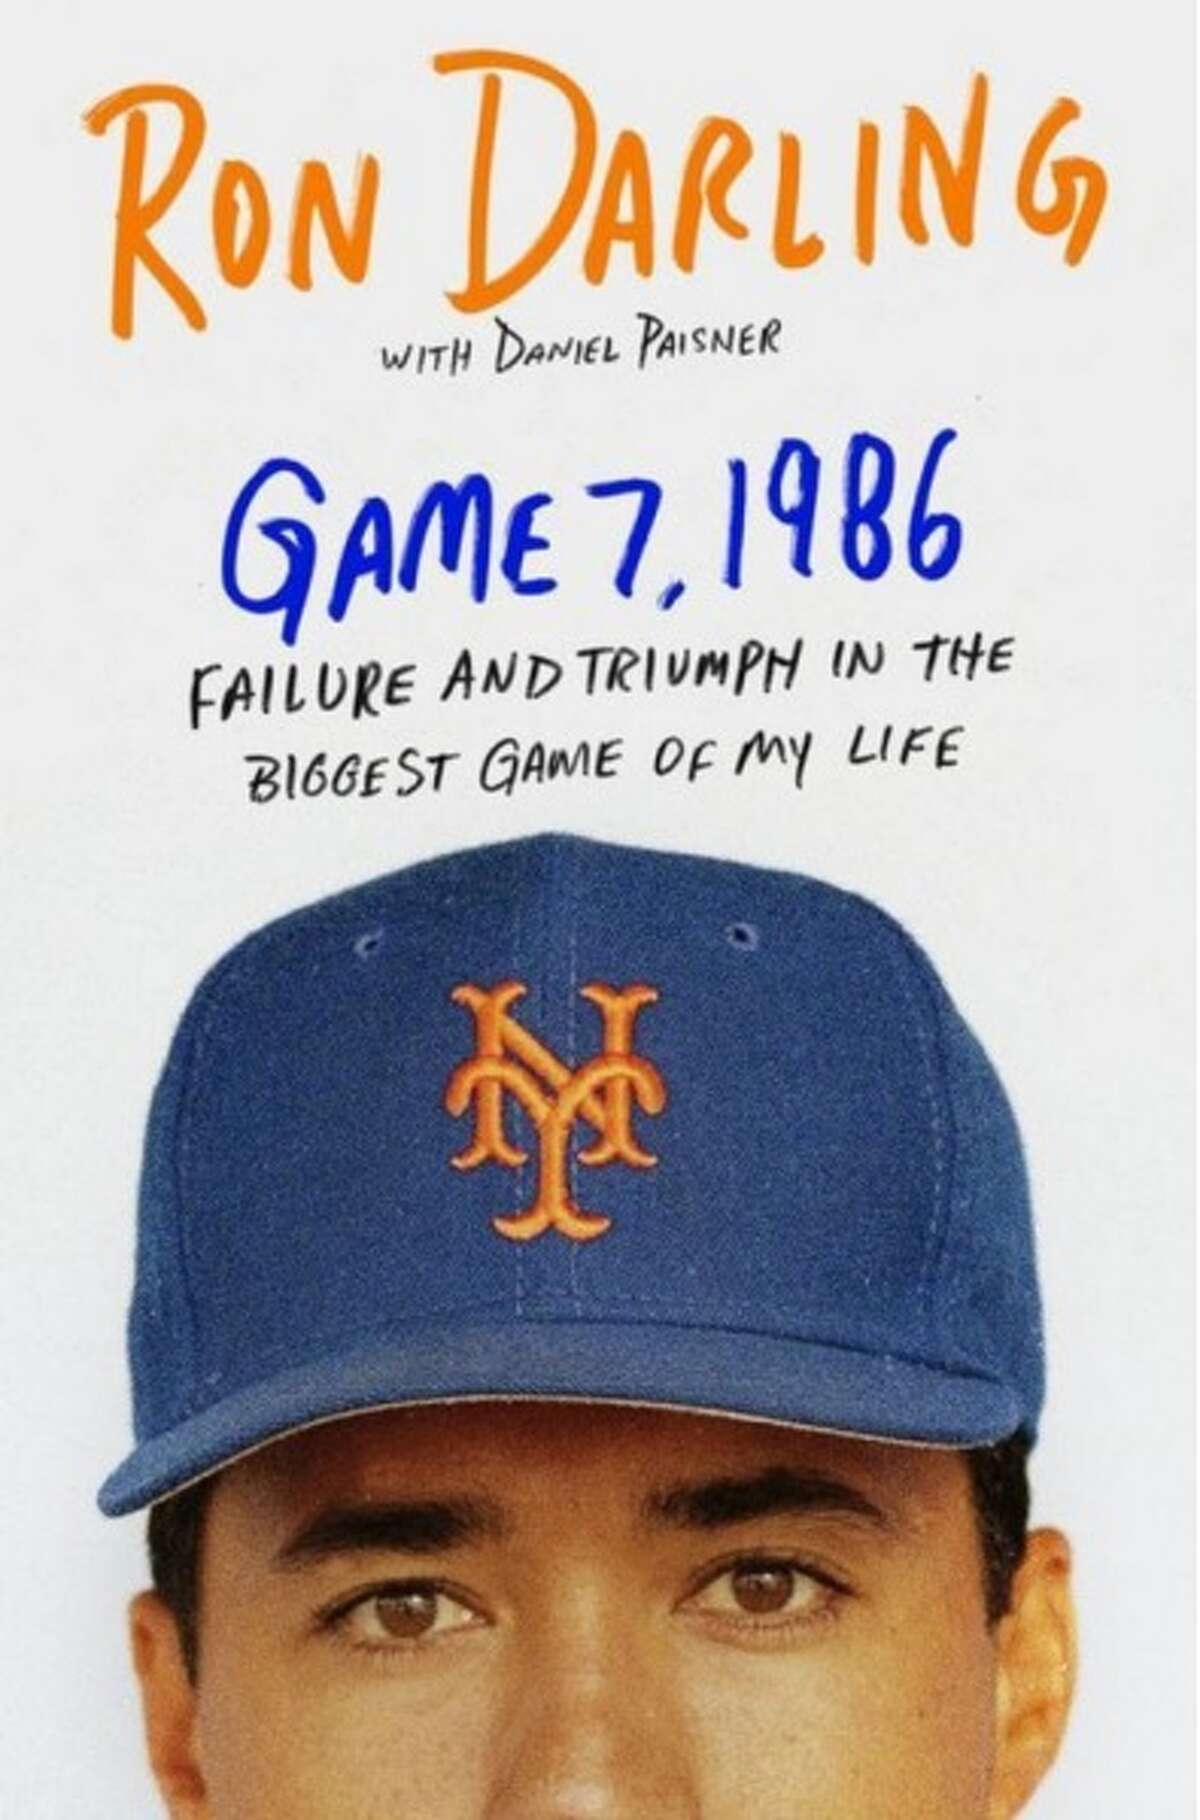 Ron Darling will be at the Stamford Barnes &Noble at 7 p.m. Thursday, April 14, to sign copies of his newly published book, ?